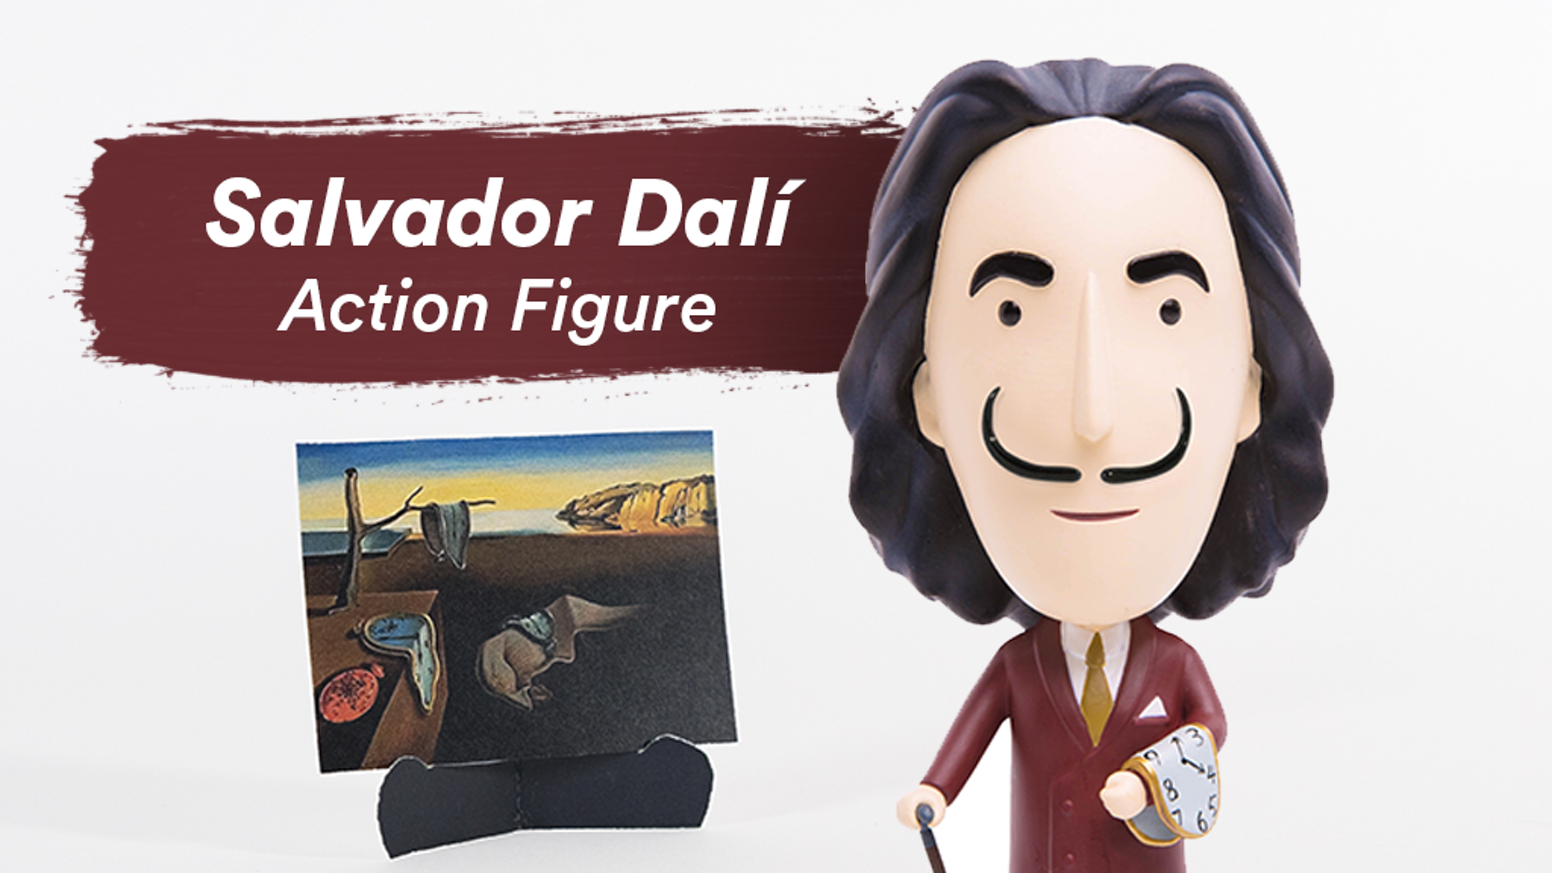 We turned Salvador Dalí into an action figure to celebrate his art and eccentricities!